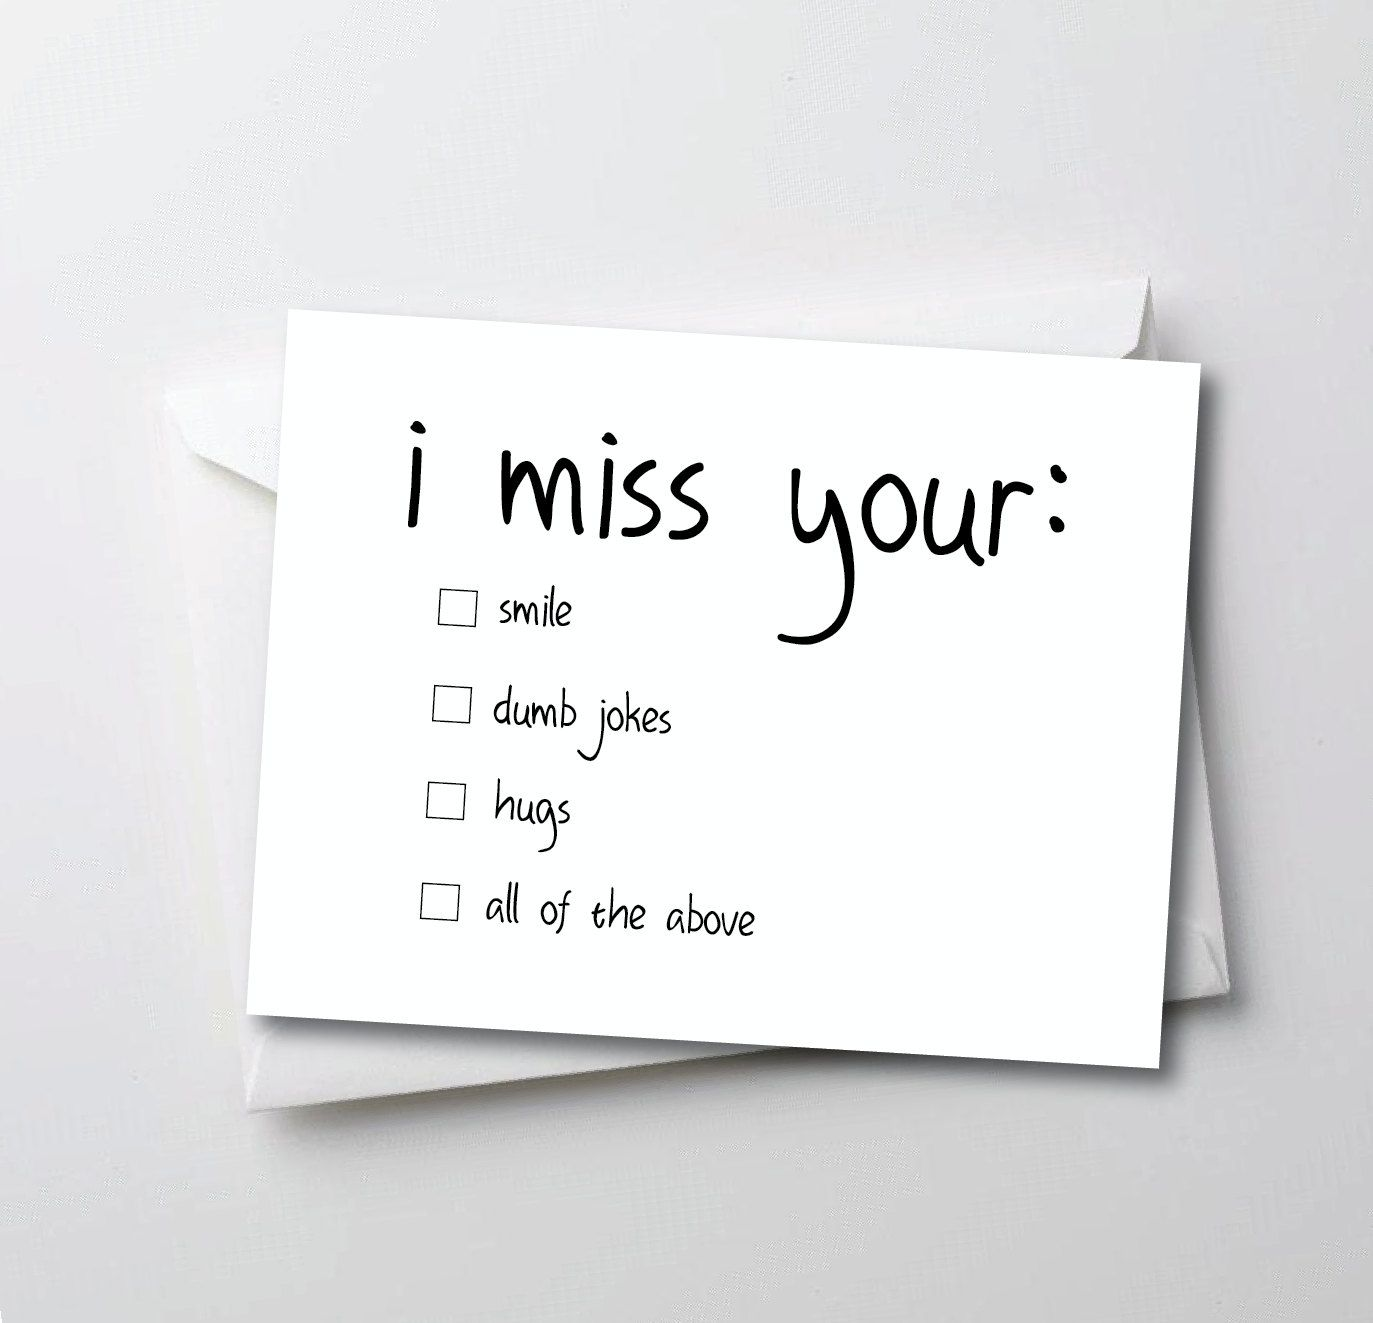 Small Of Miss You Funny